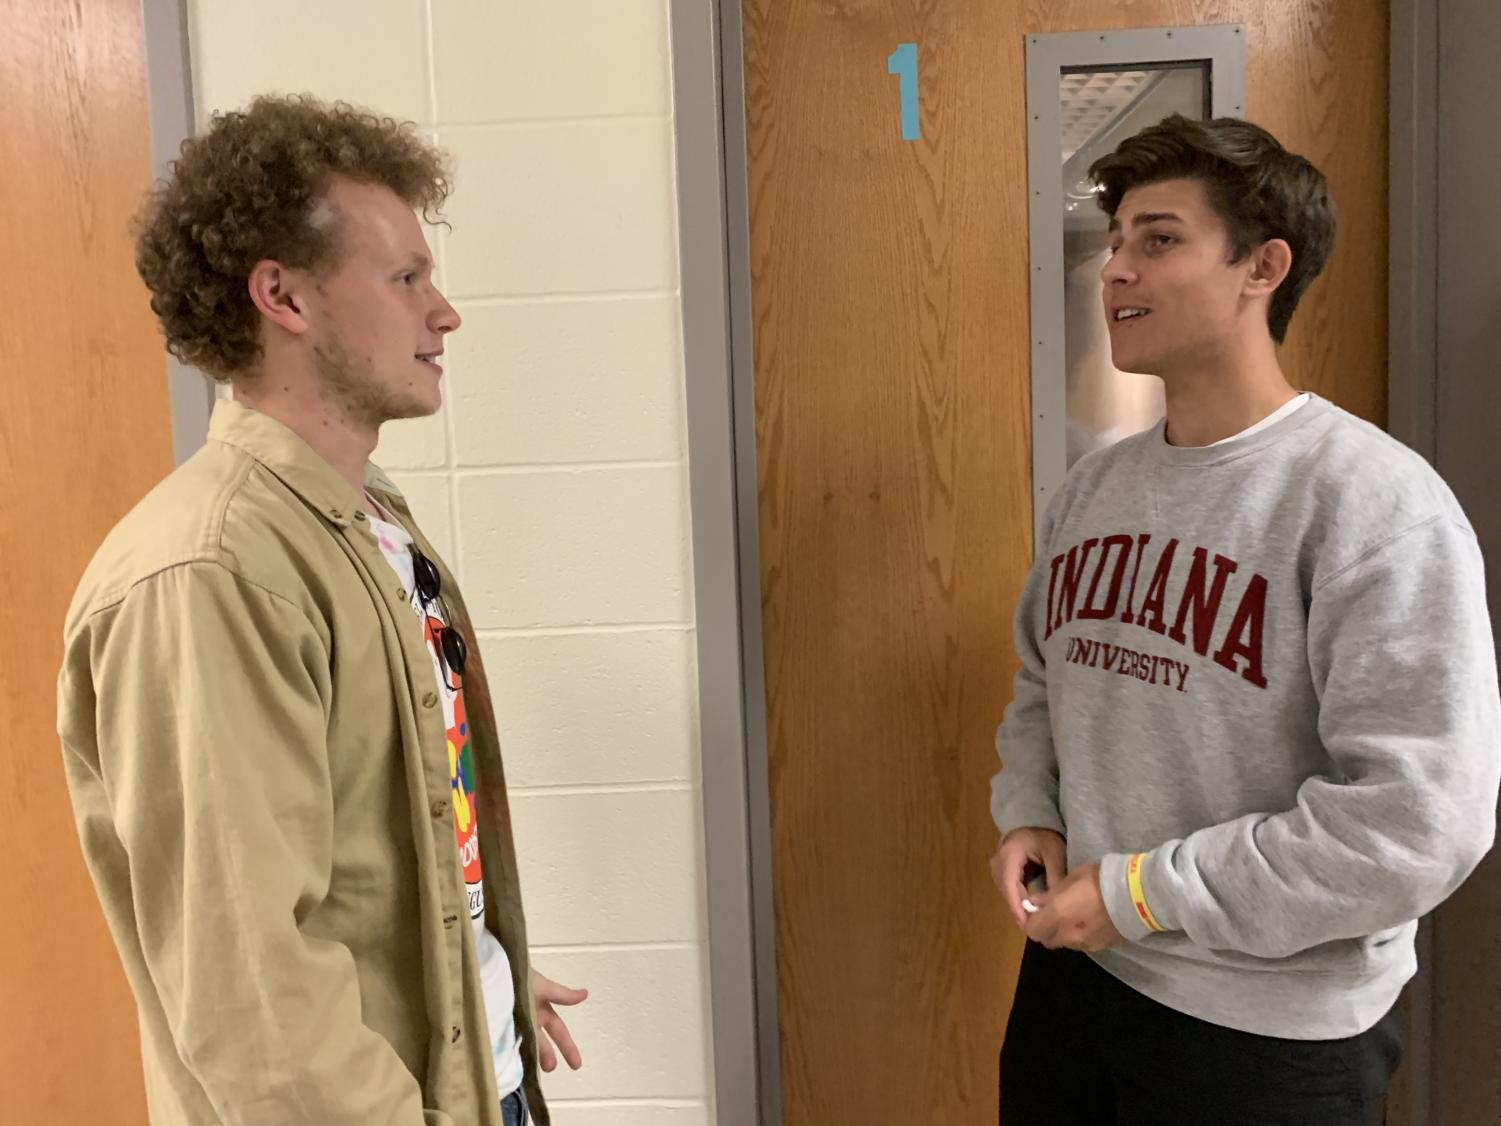 Connor Inskeep, GKOM Council member and senior, talks to junior Robert Pugh. Inskeep said he is excited to watch GKOMs develop their relationships with freshmen.